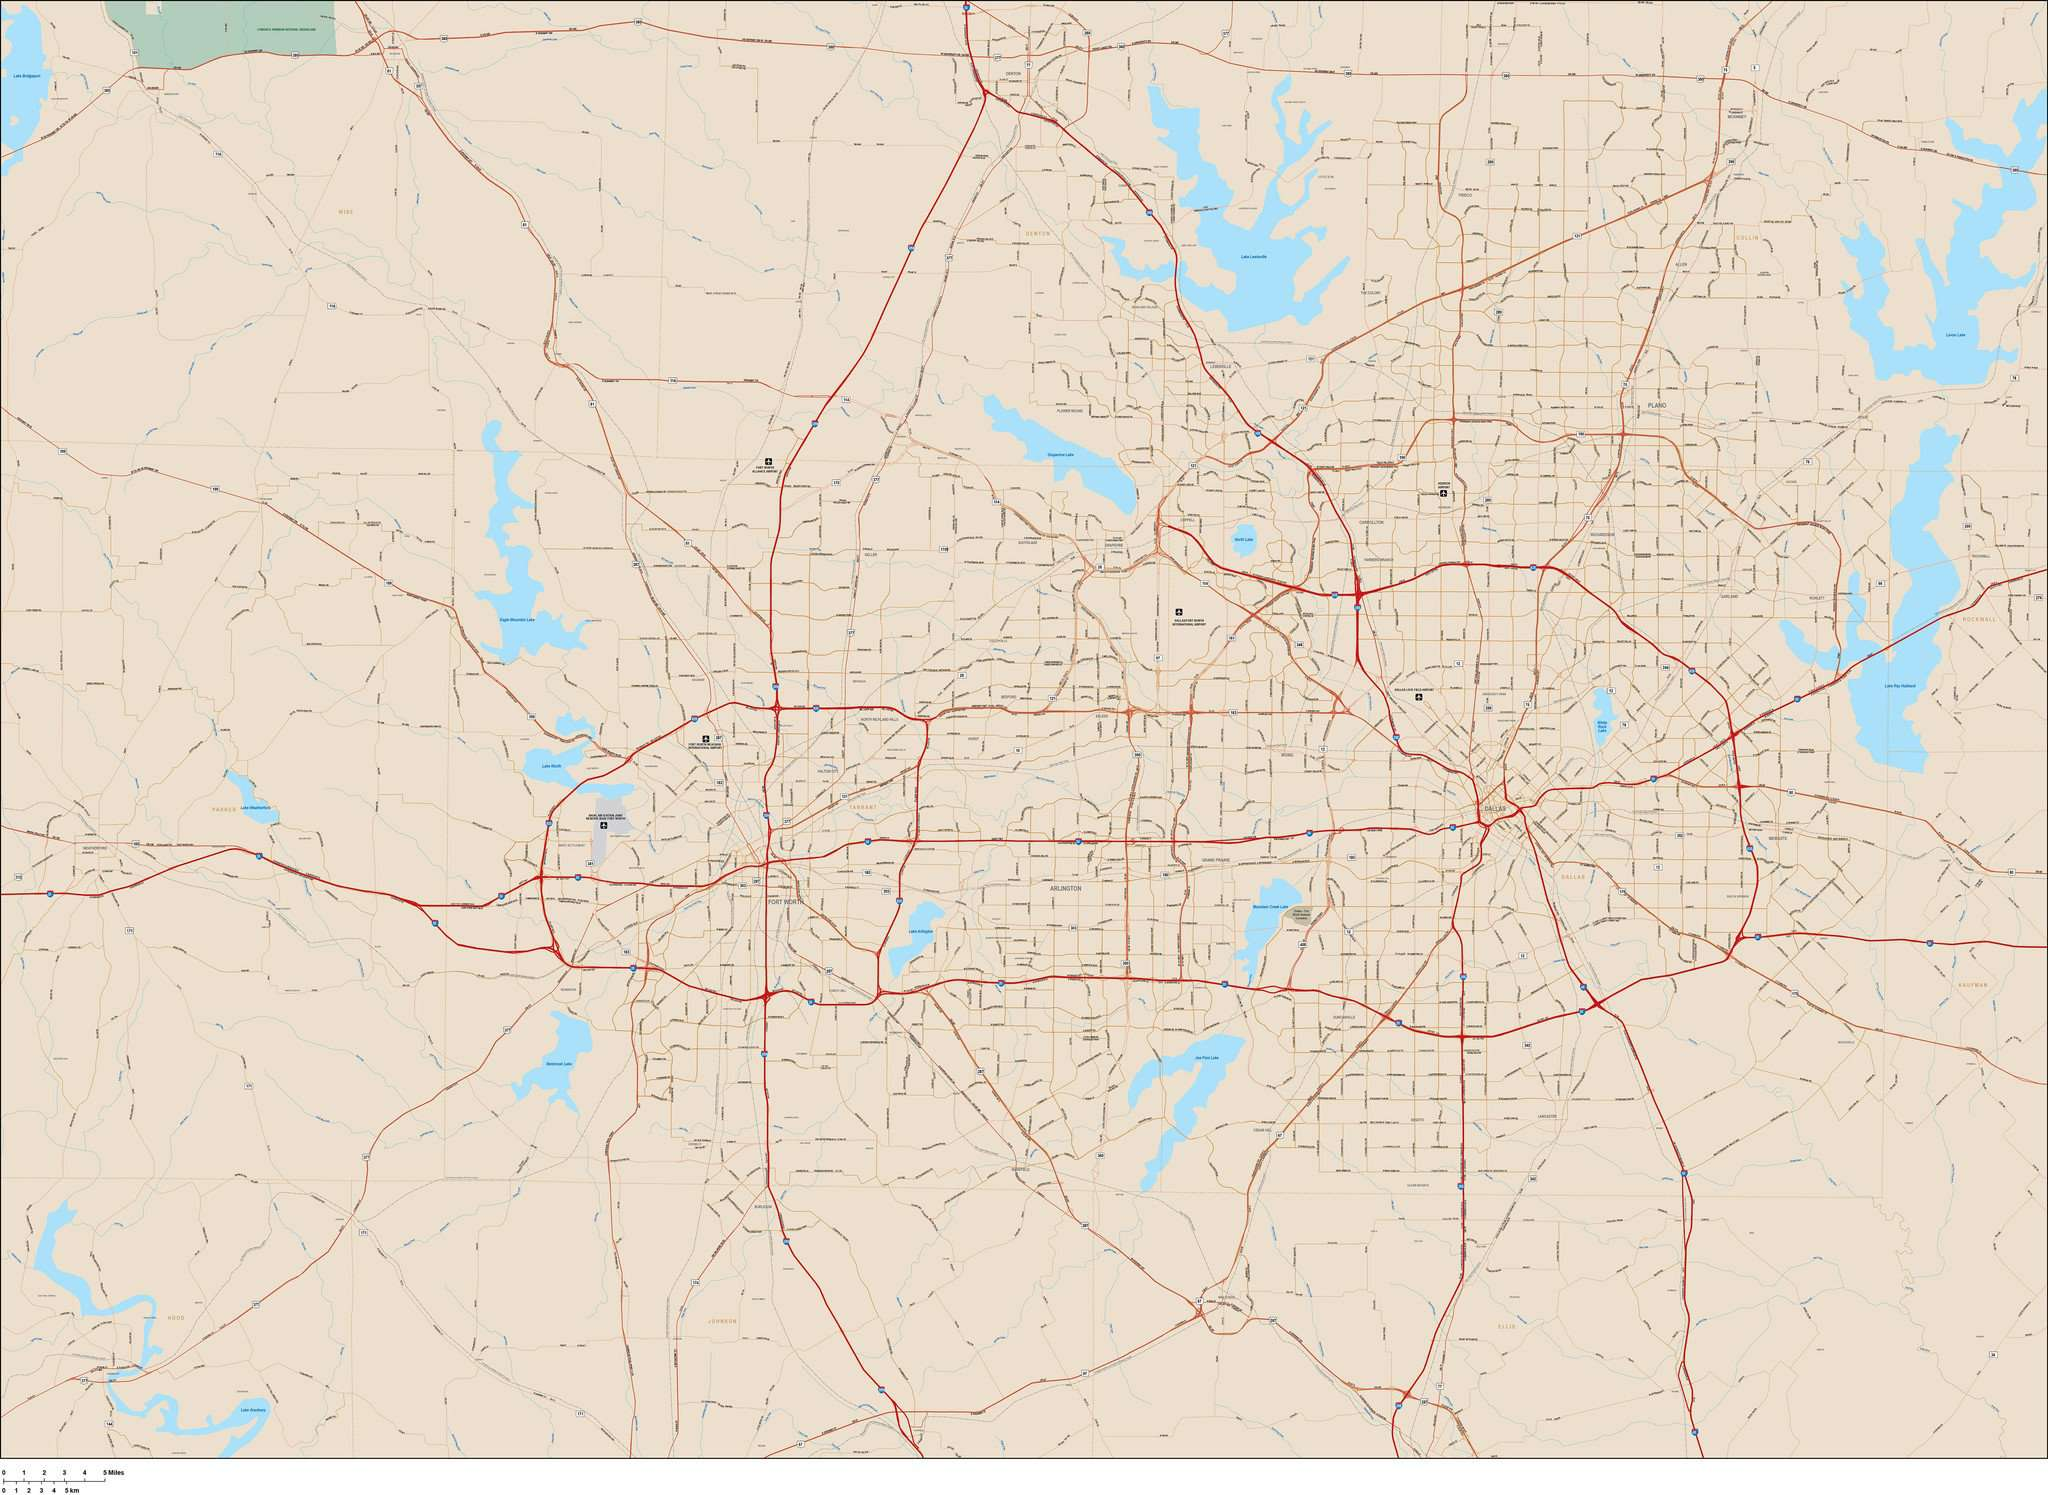 Dallas and Fort Worth TX Metro Area Map on dallas ft.worth, dallas fort worth airport map, dallas fort worth texas map, ft.worth map, arlington and fort worth map, greater dallas fort worth map, dallas fort worth map vector, dallas fort worth area, dallas fort worth metroplex cities,